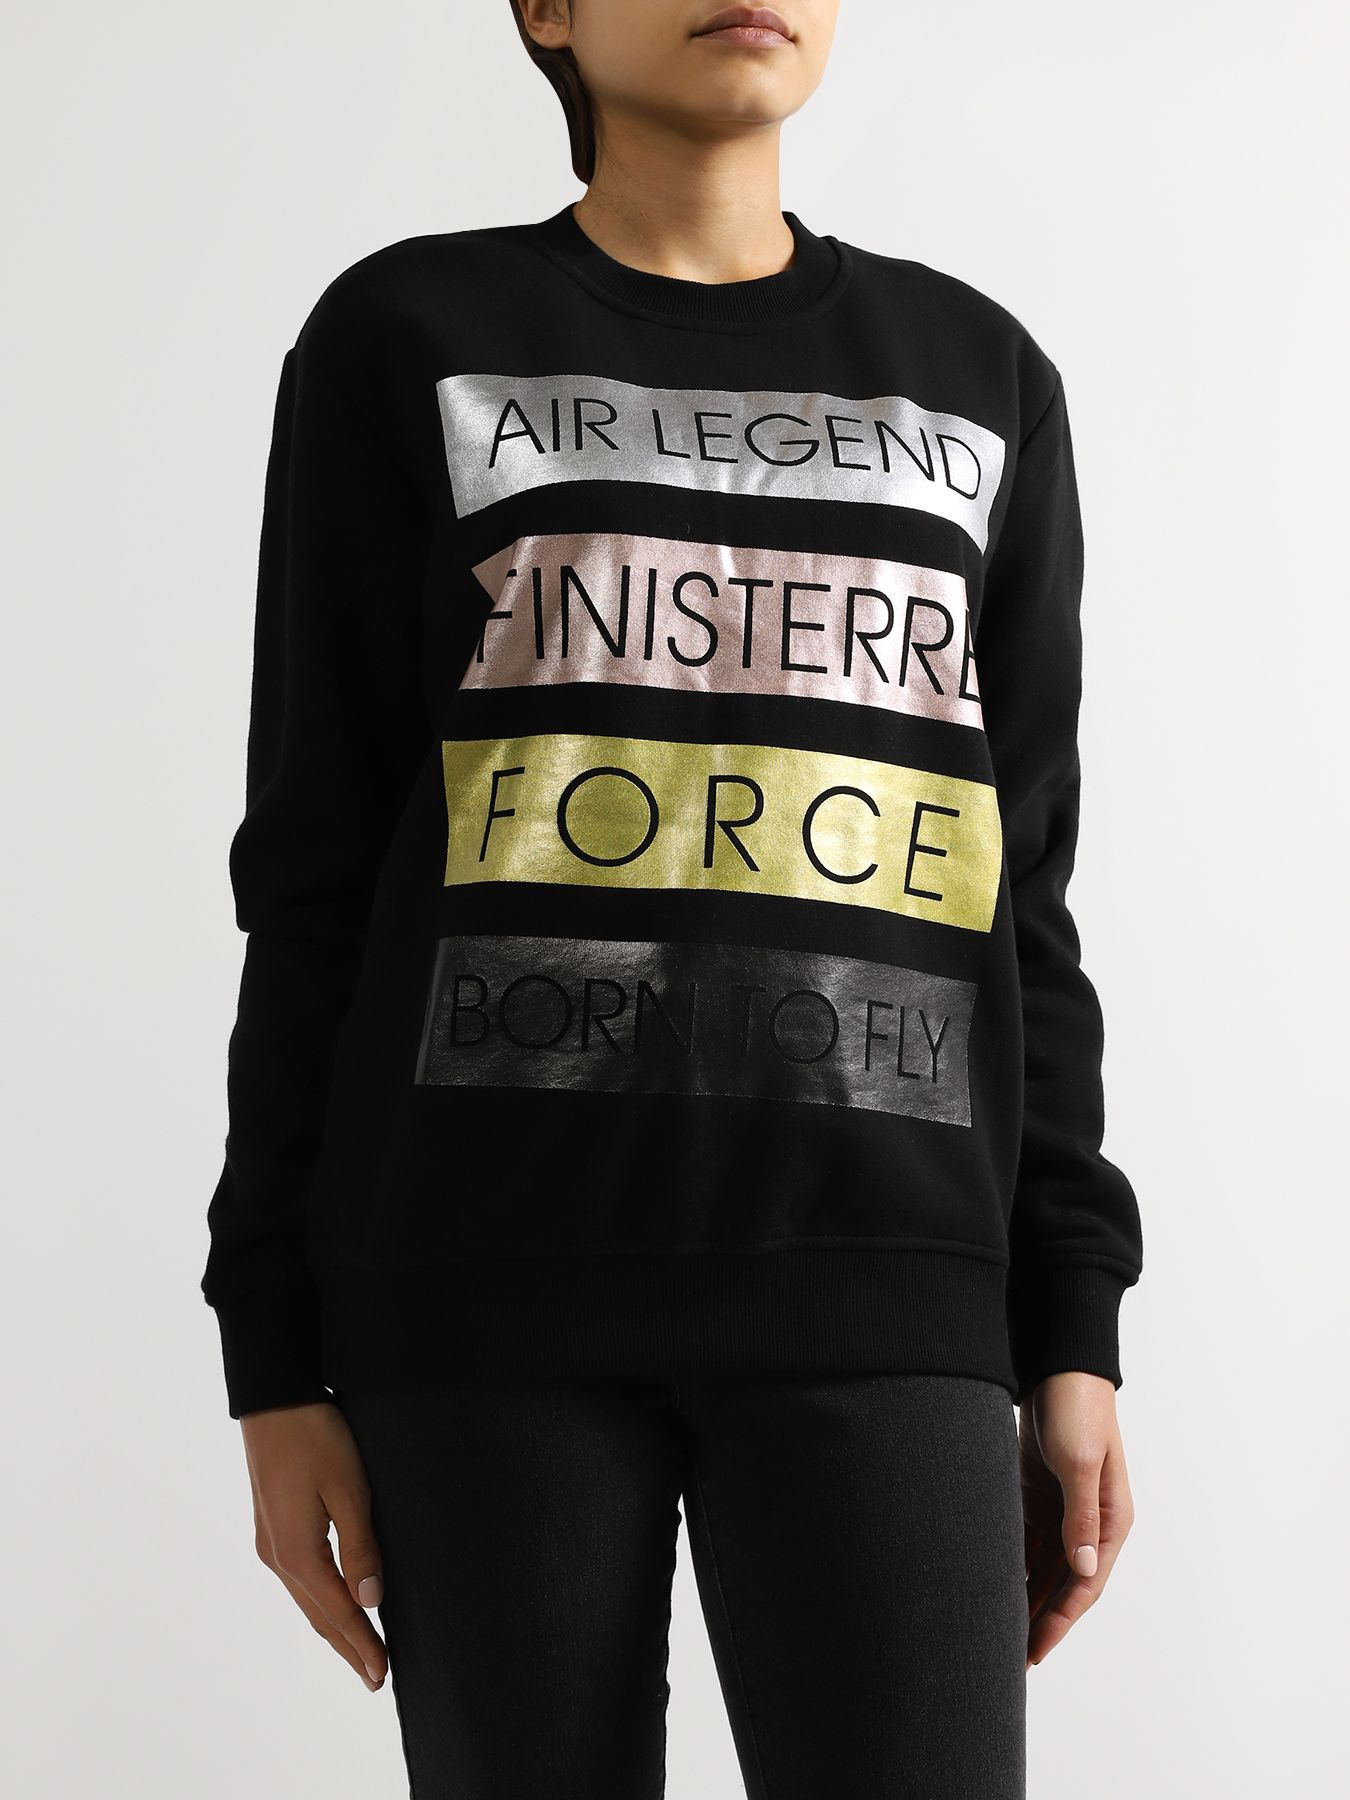 Finisterre Force Finisterre Force Джемпер